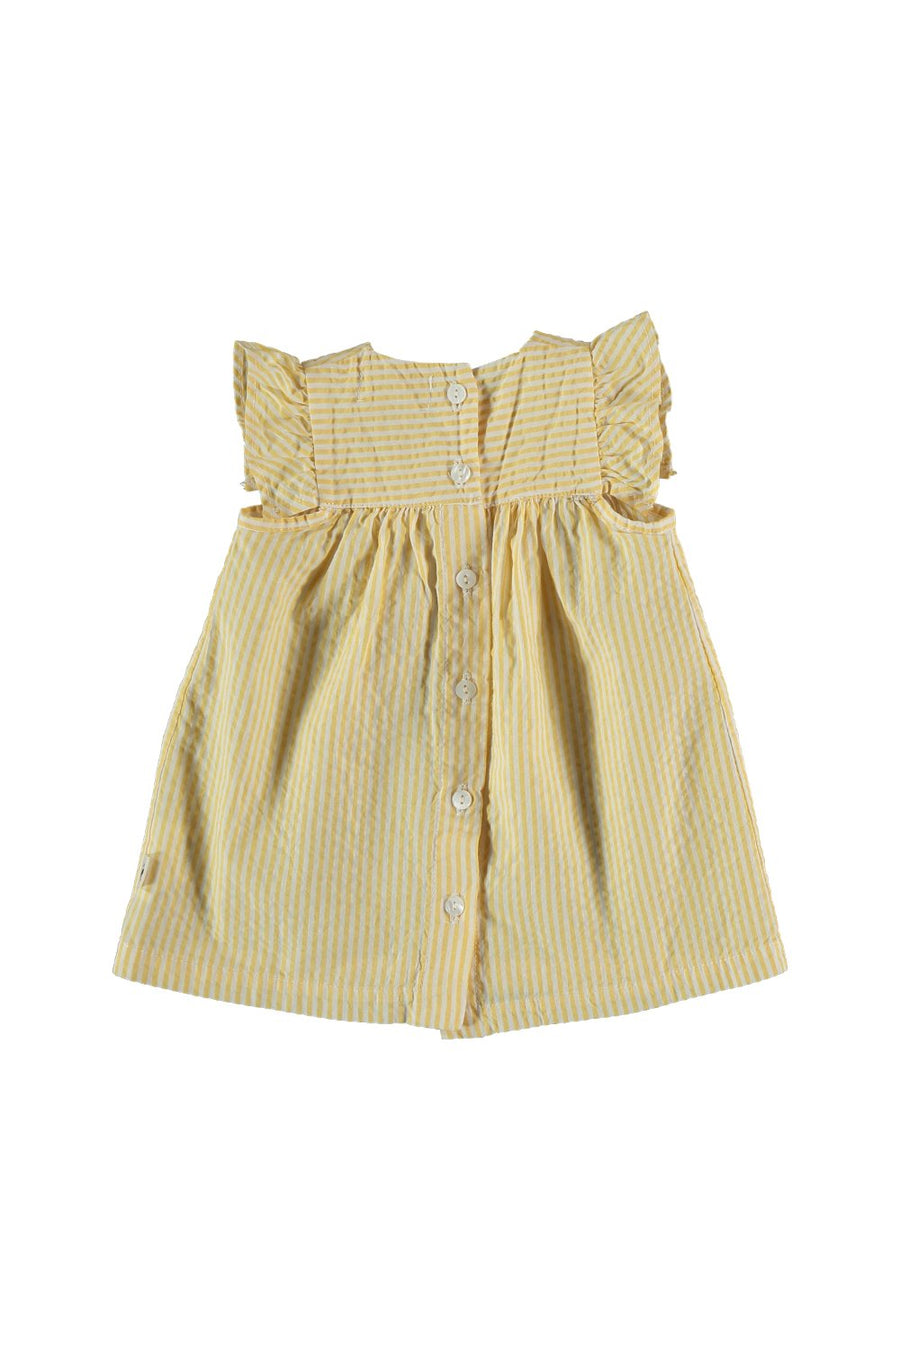 STRIPED SEERSUCKER BABY DRESS